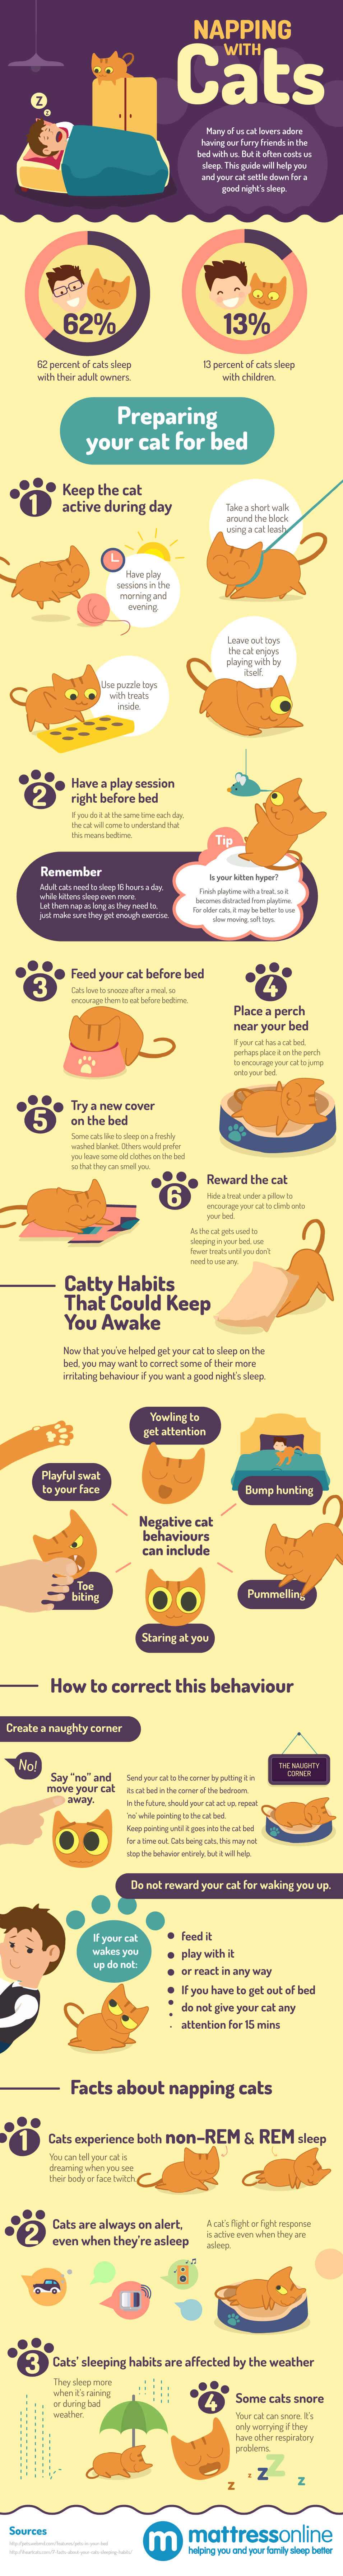 napping-with-cats-infographic